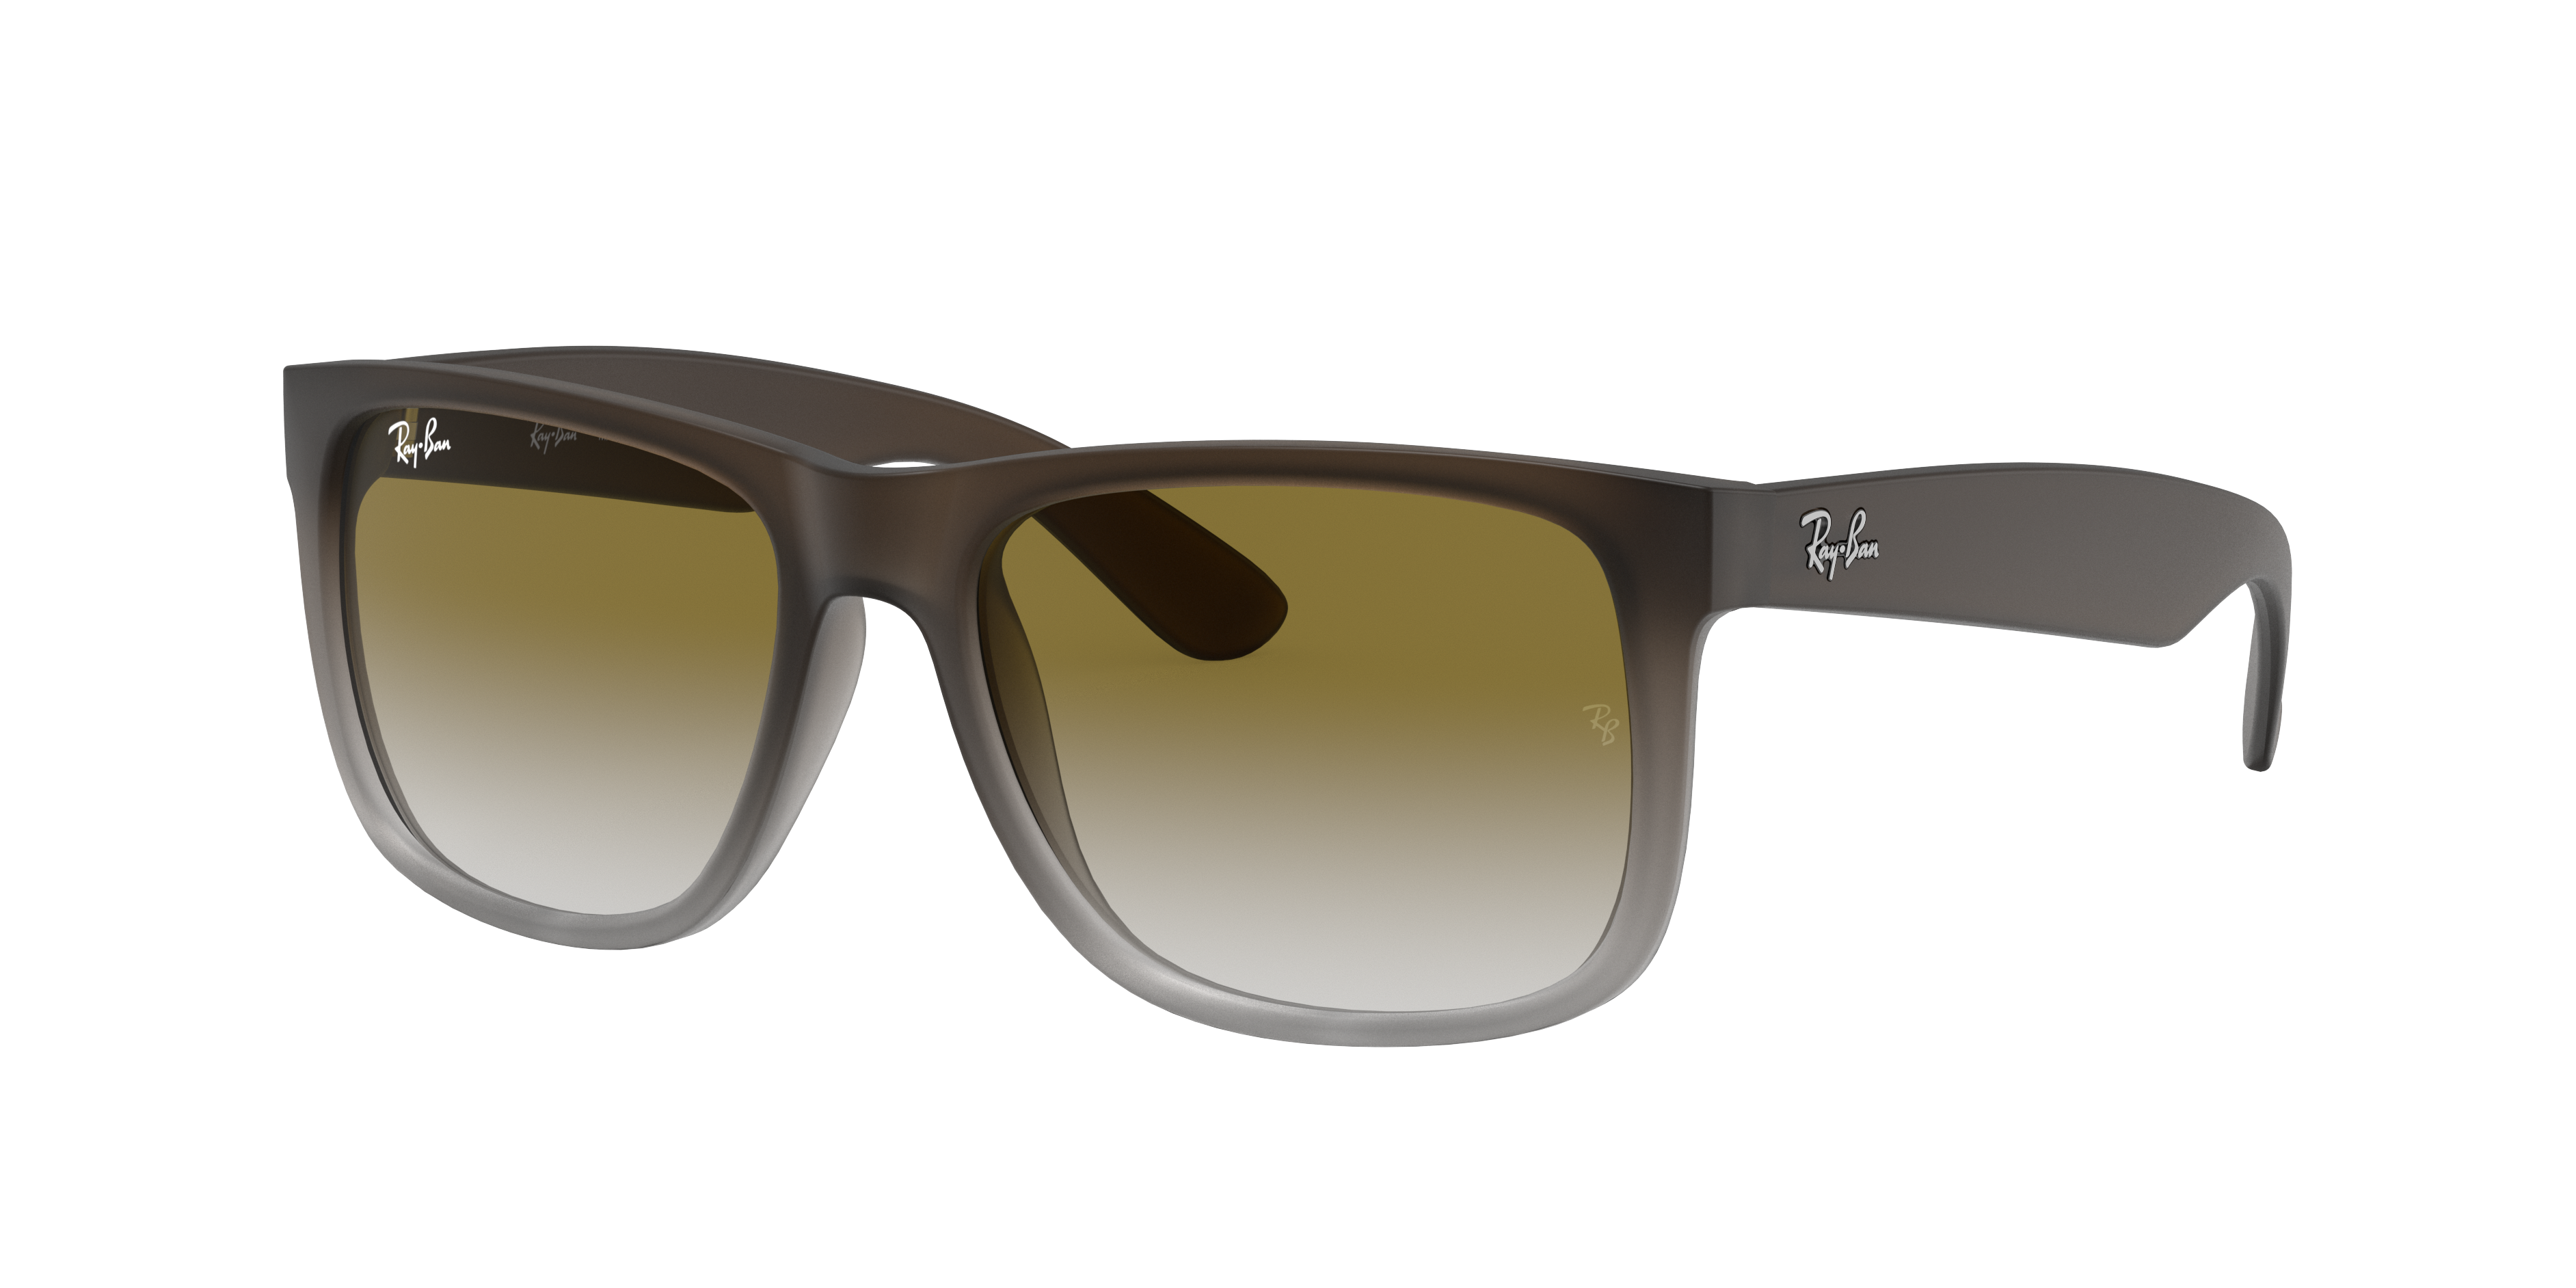 Ray-Ban Justin Classic Brown, Green Lenses - RB4165